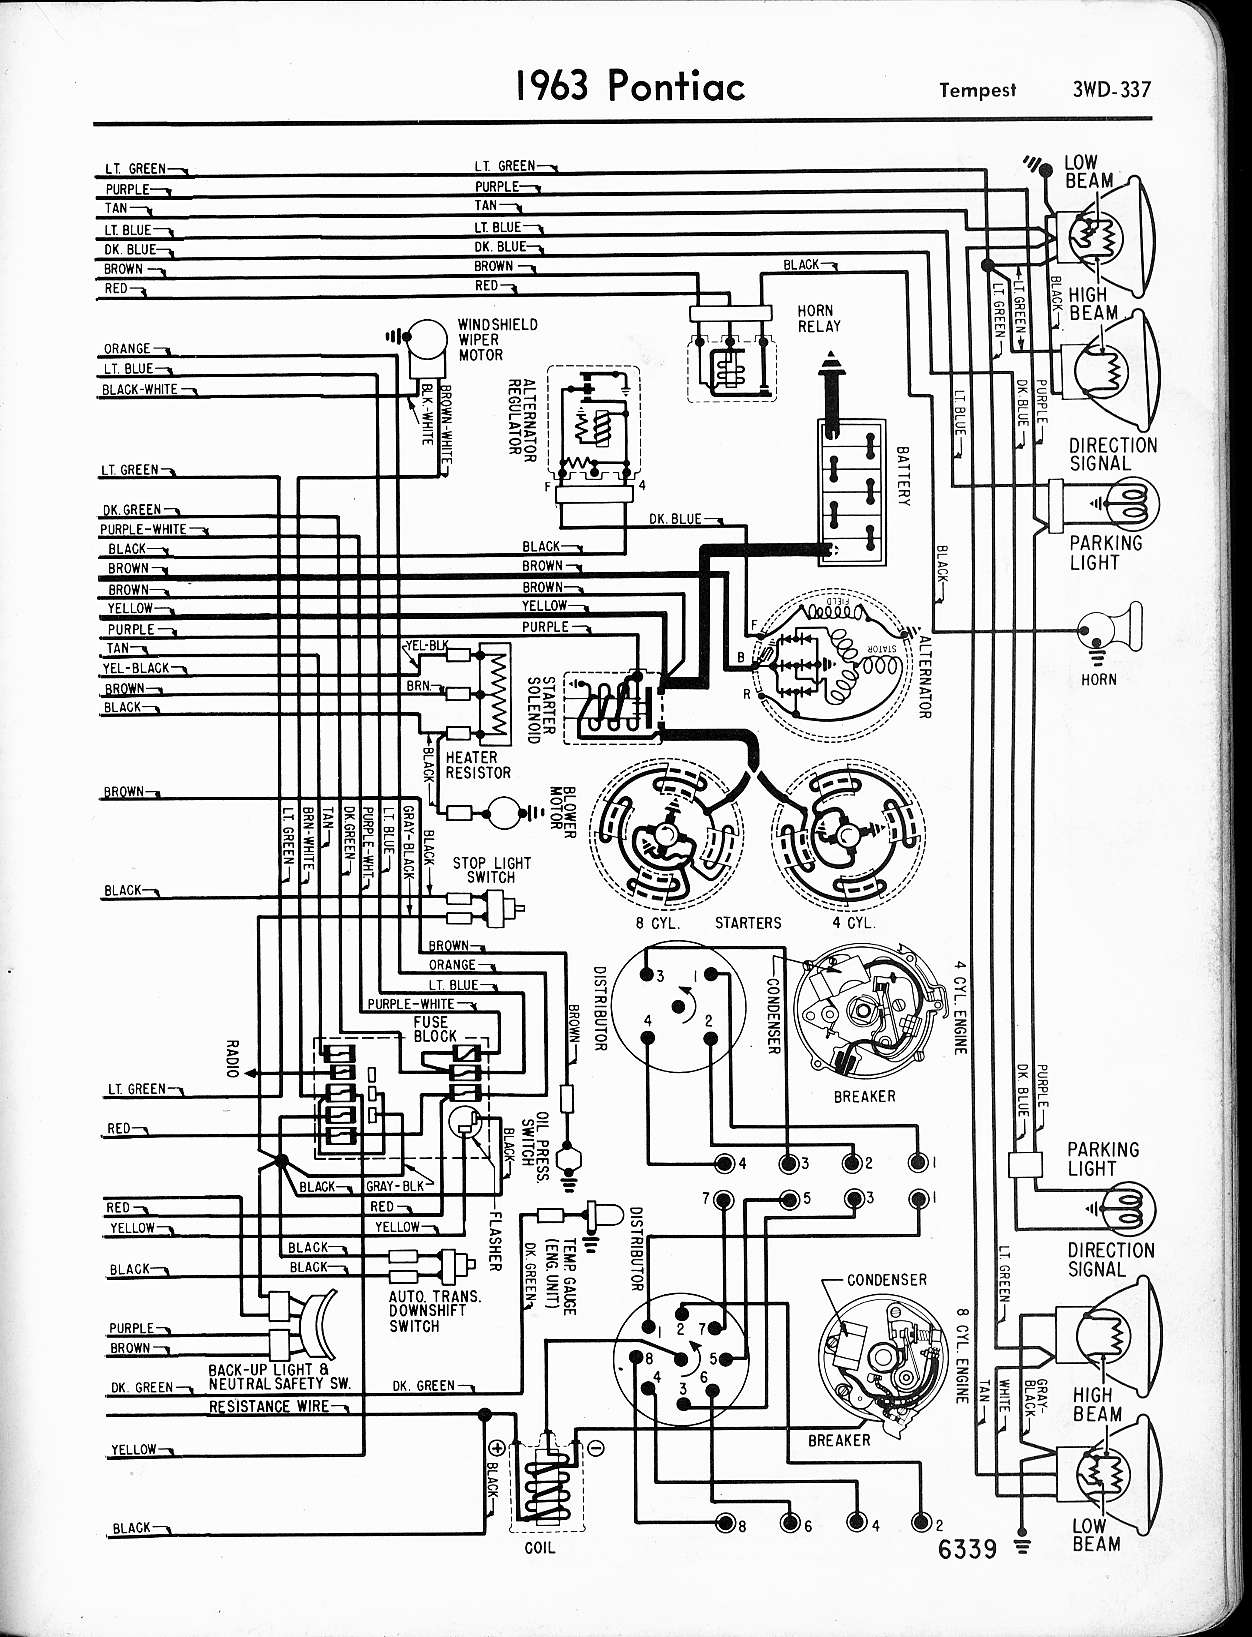 Wallace Racing Wiring Diagrams 1973 Mustang Mach 1 Diagram 1963 Tempest Right Page